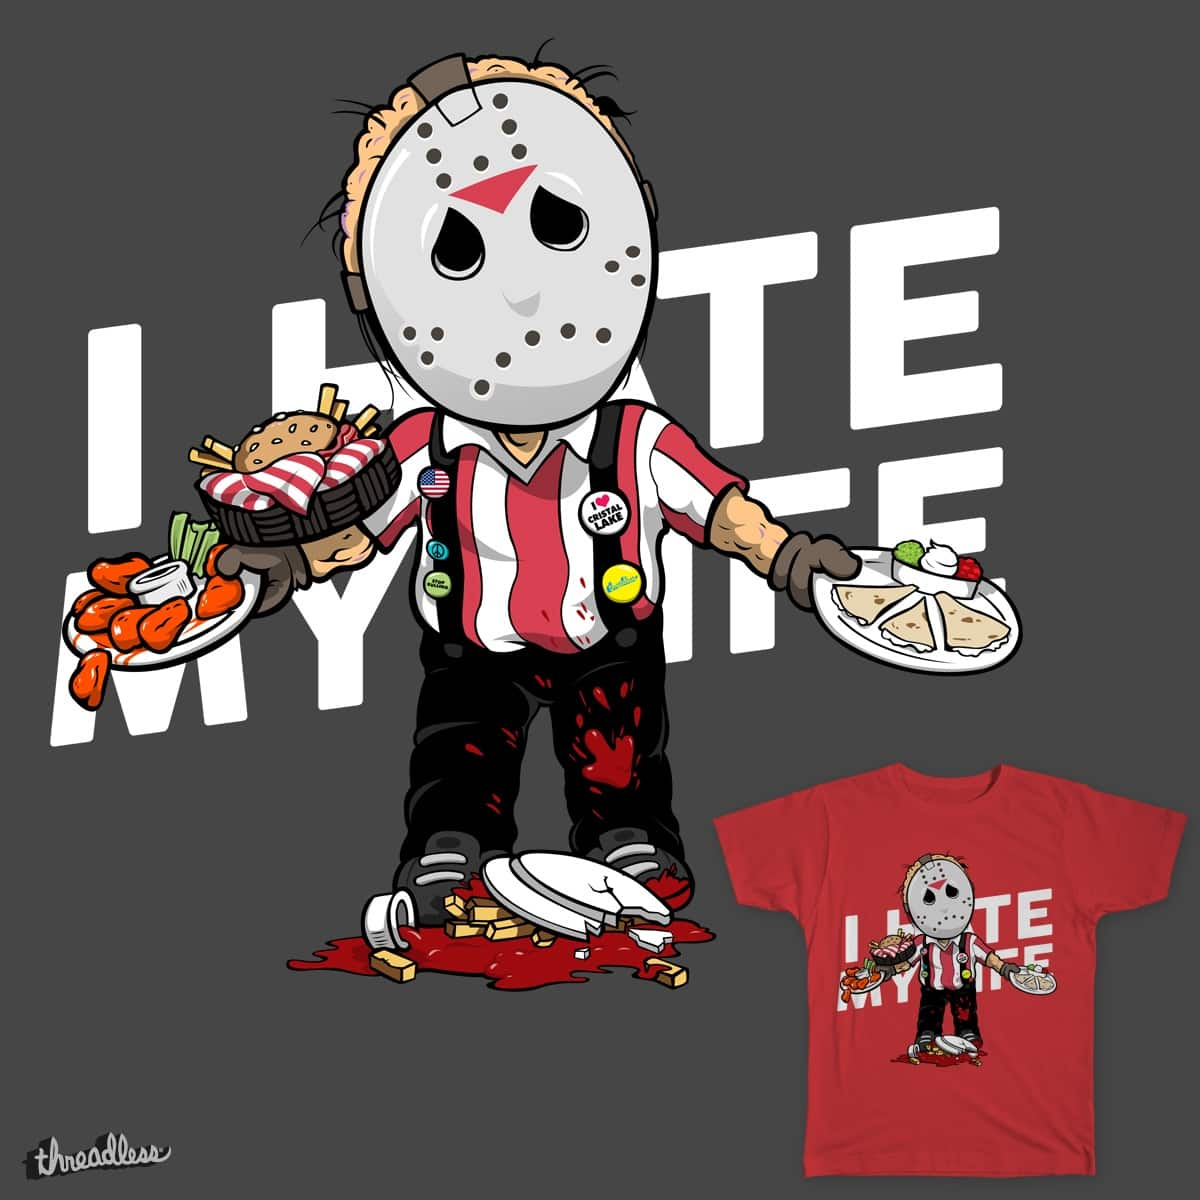 I hate my life by vadelate on Threadless